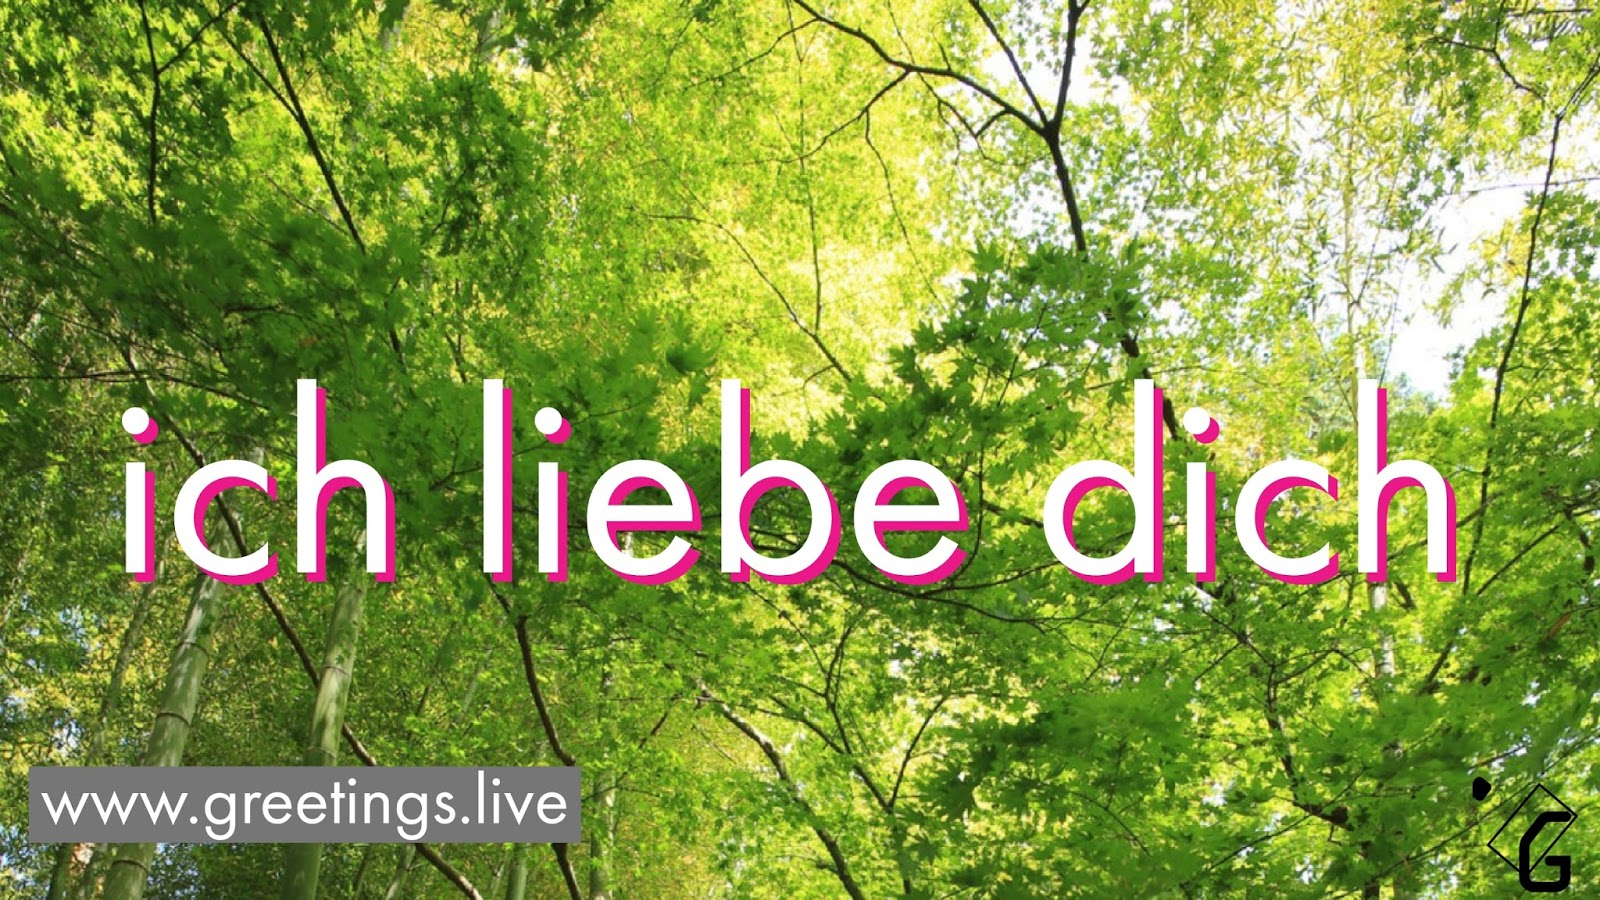 Greetingsve free hd images to express wishes all occasions i love you in german language hd greeting live m4hsunfo